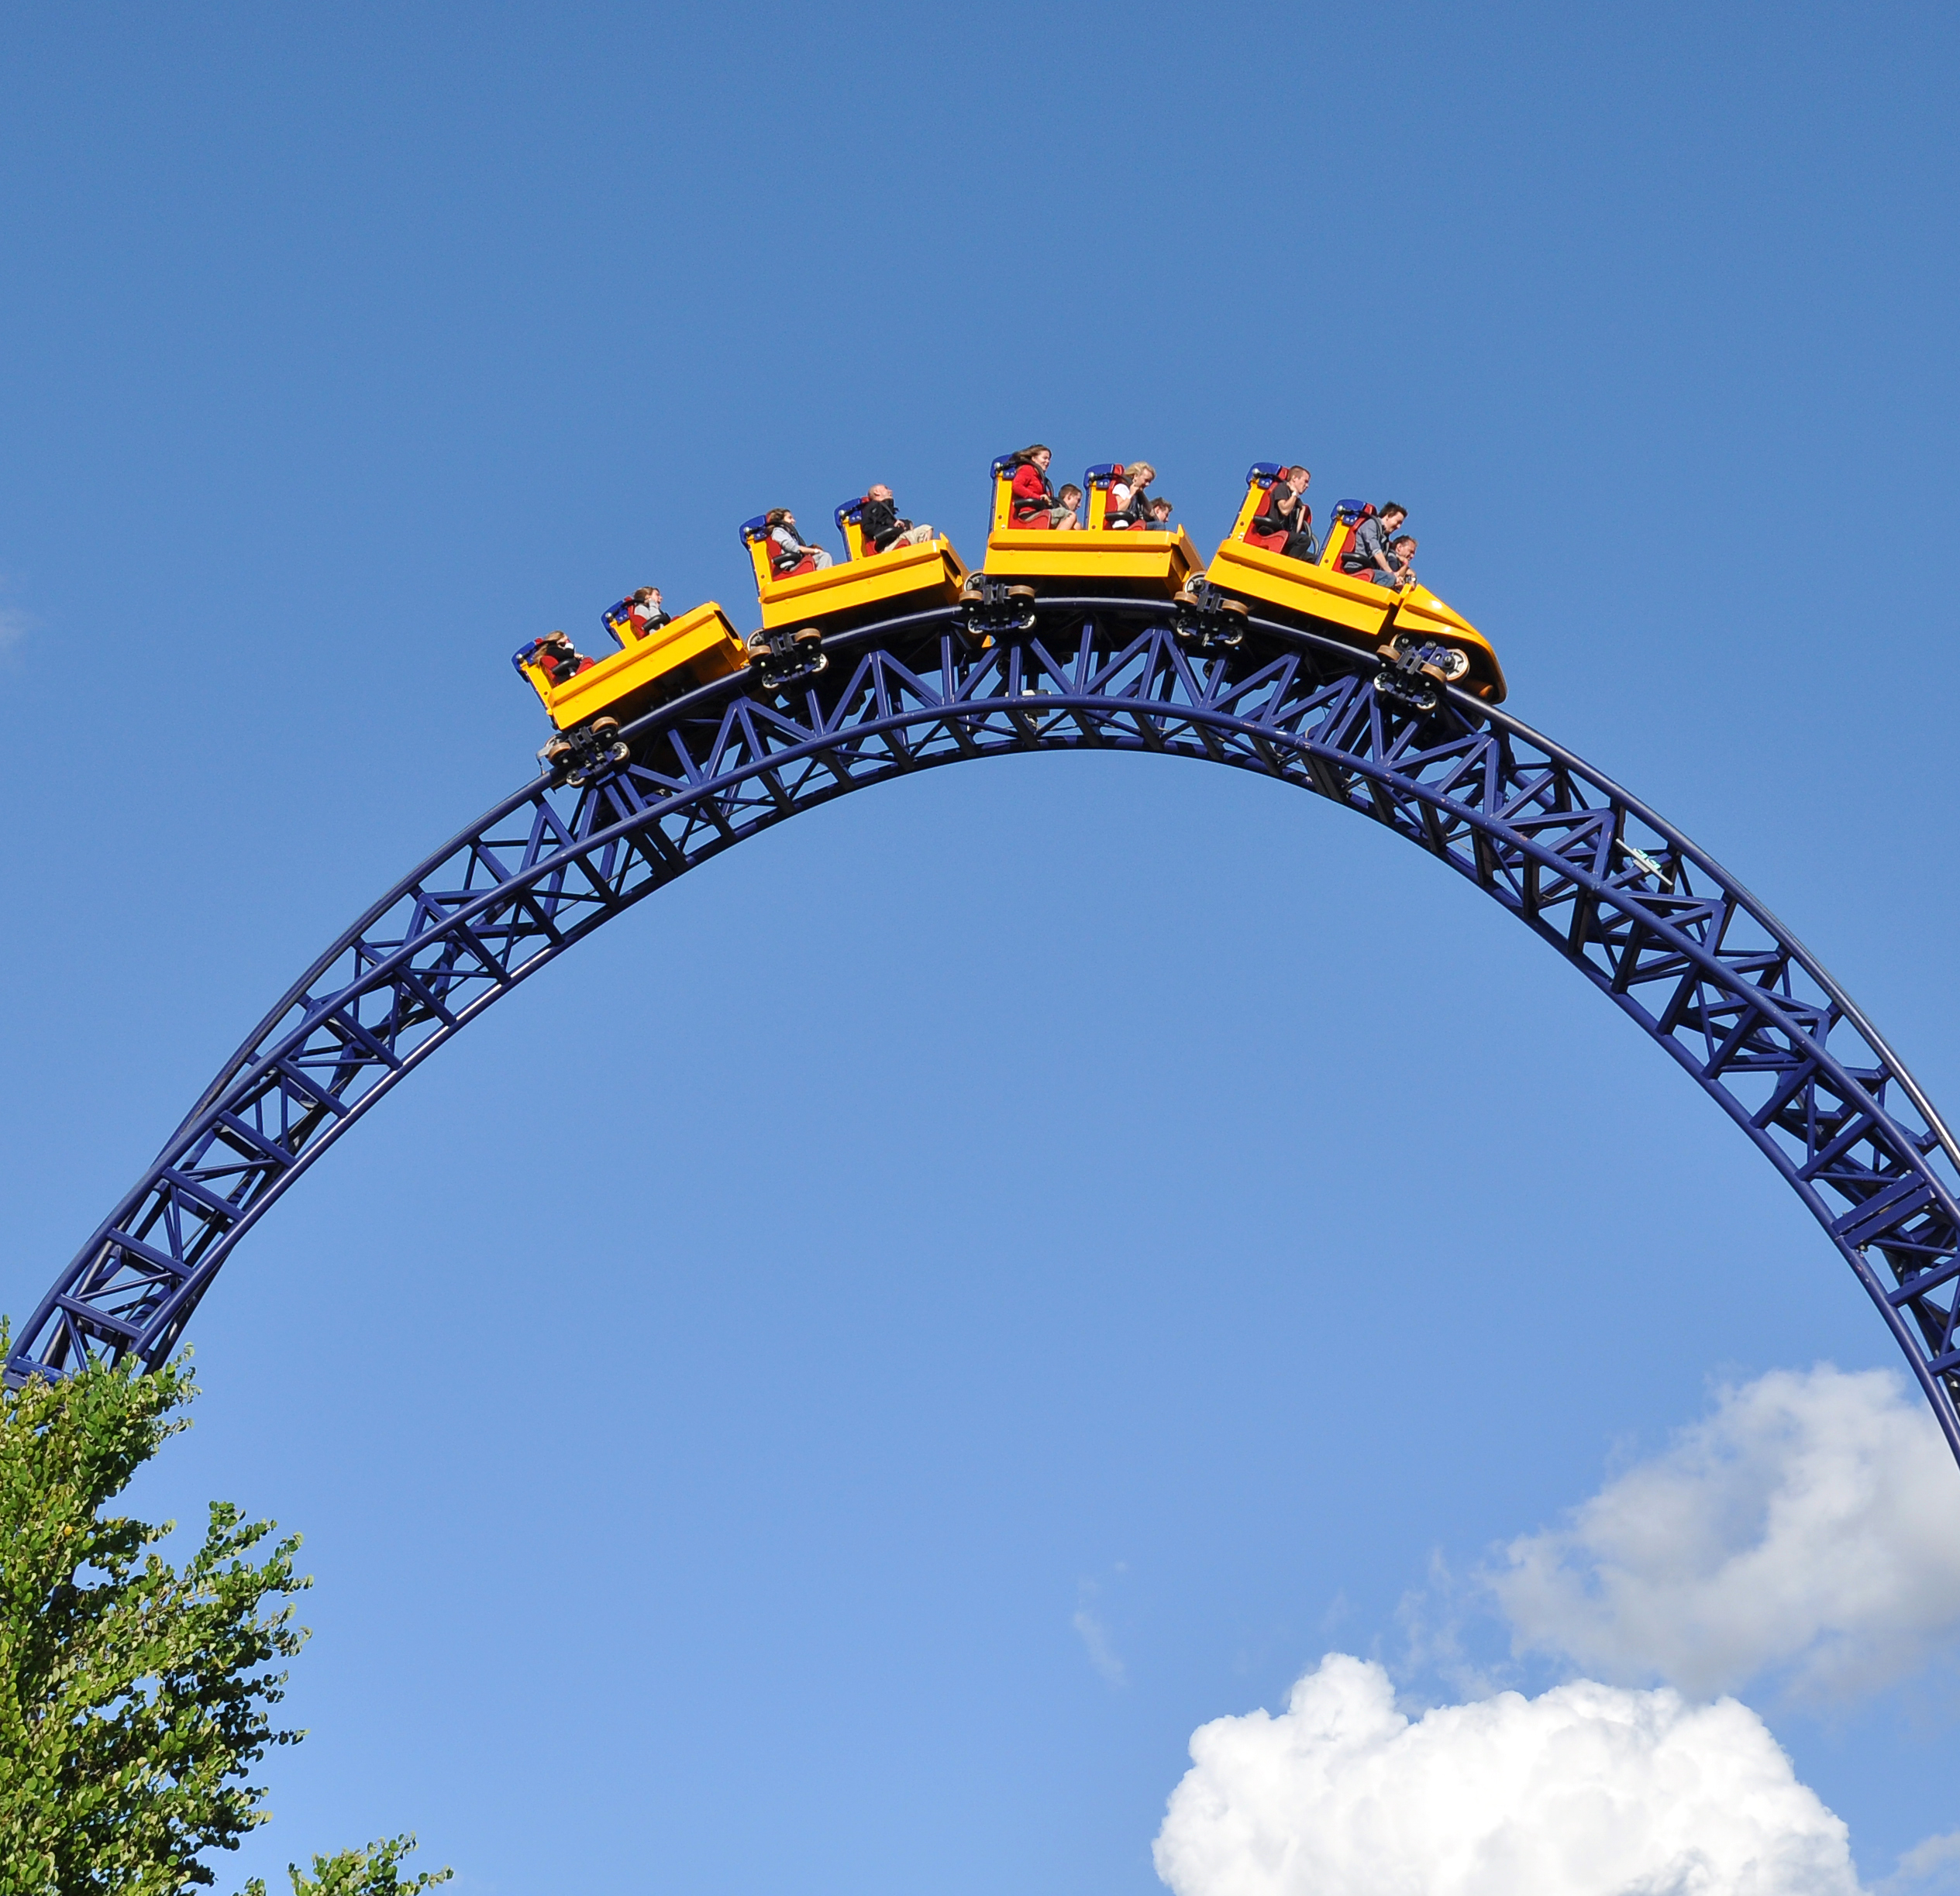 Yellow roller coaster on black track against bright blue clear sky